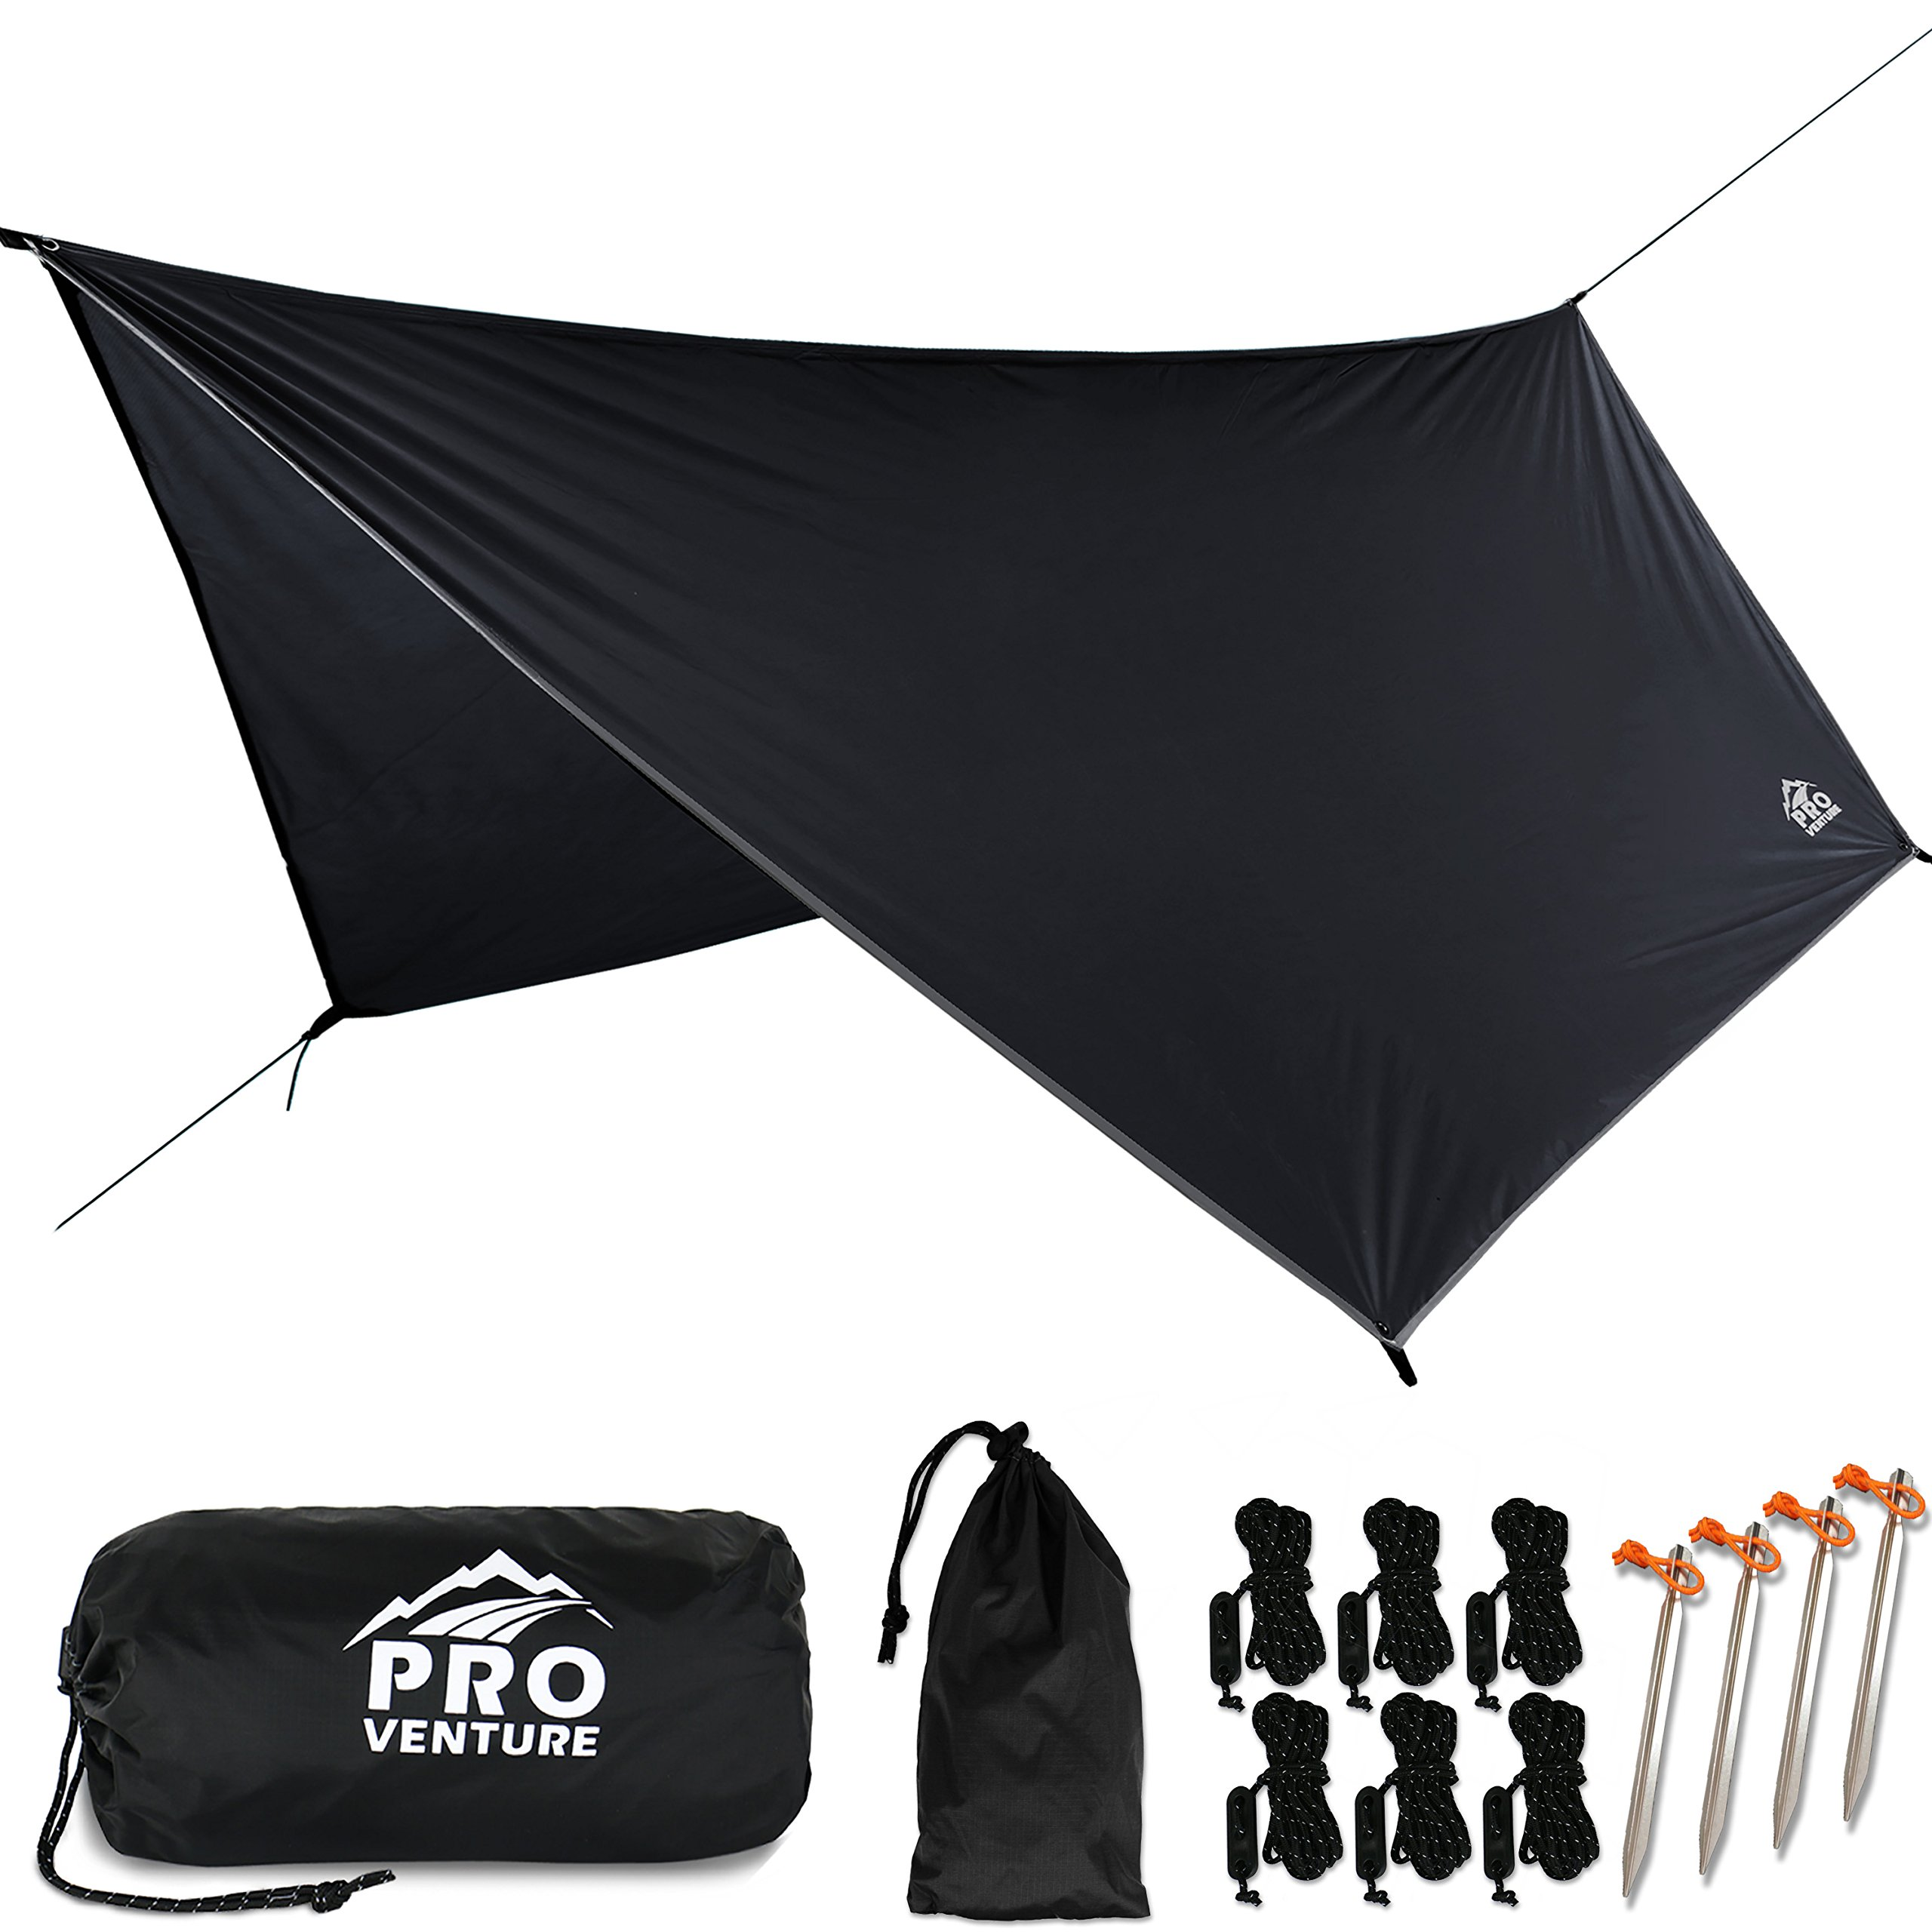 Pro Venture [12 FT Hex] Waterproof Hammock RAIN Fly - Portable Large Rain Tarp - Premium Lightweight Ripstop Nylon - Fast Set Up - Hammock Camping Essential! 12FT x 9FT HEX Shape by Pro Venture